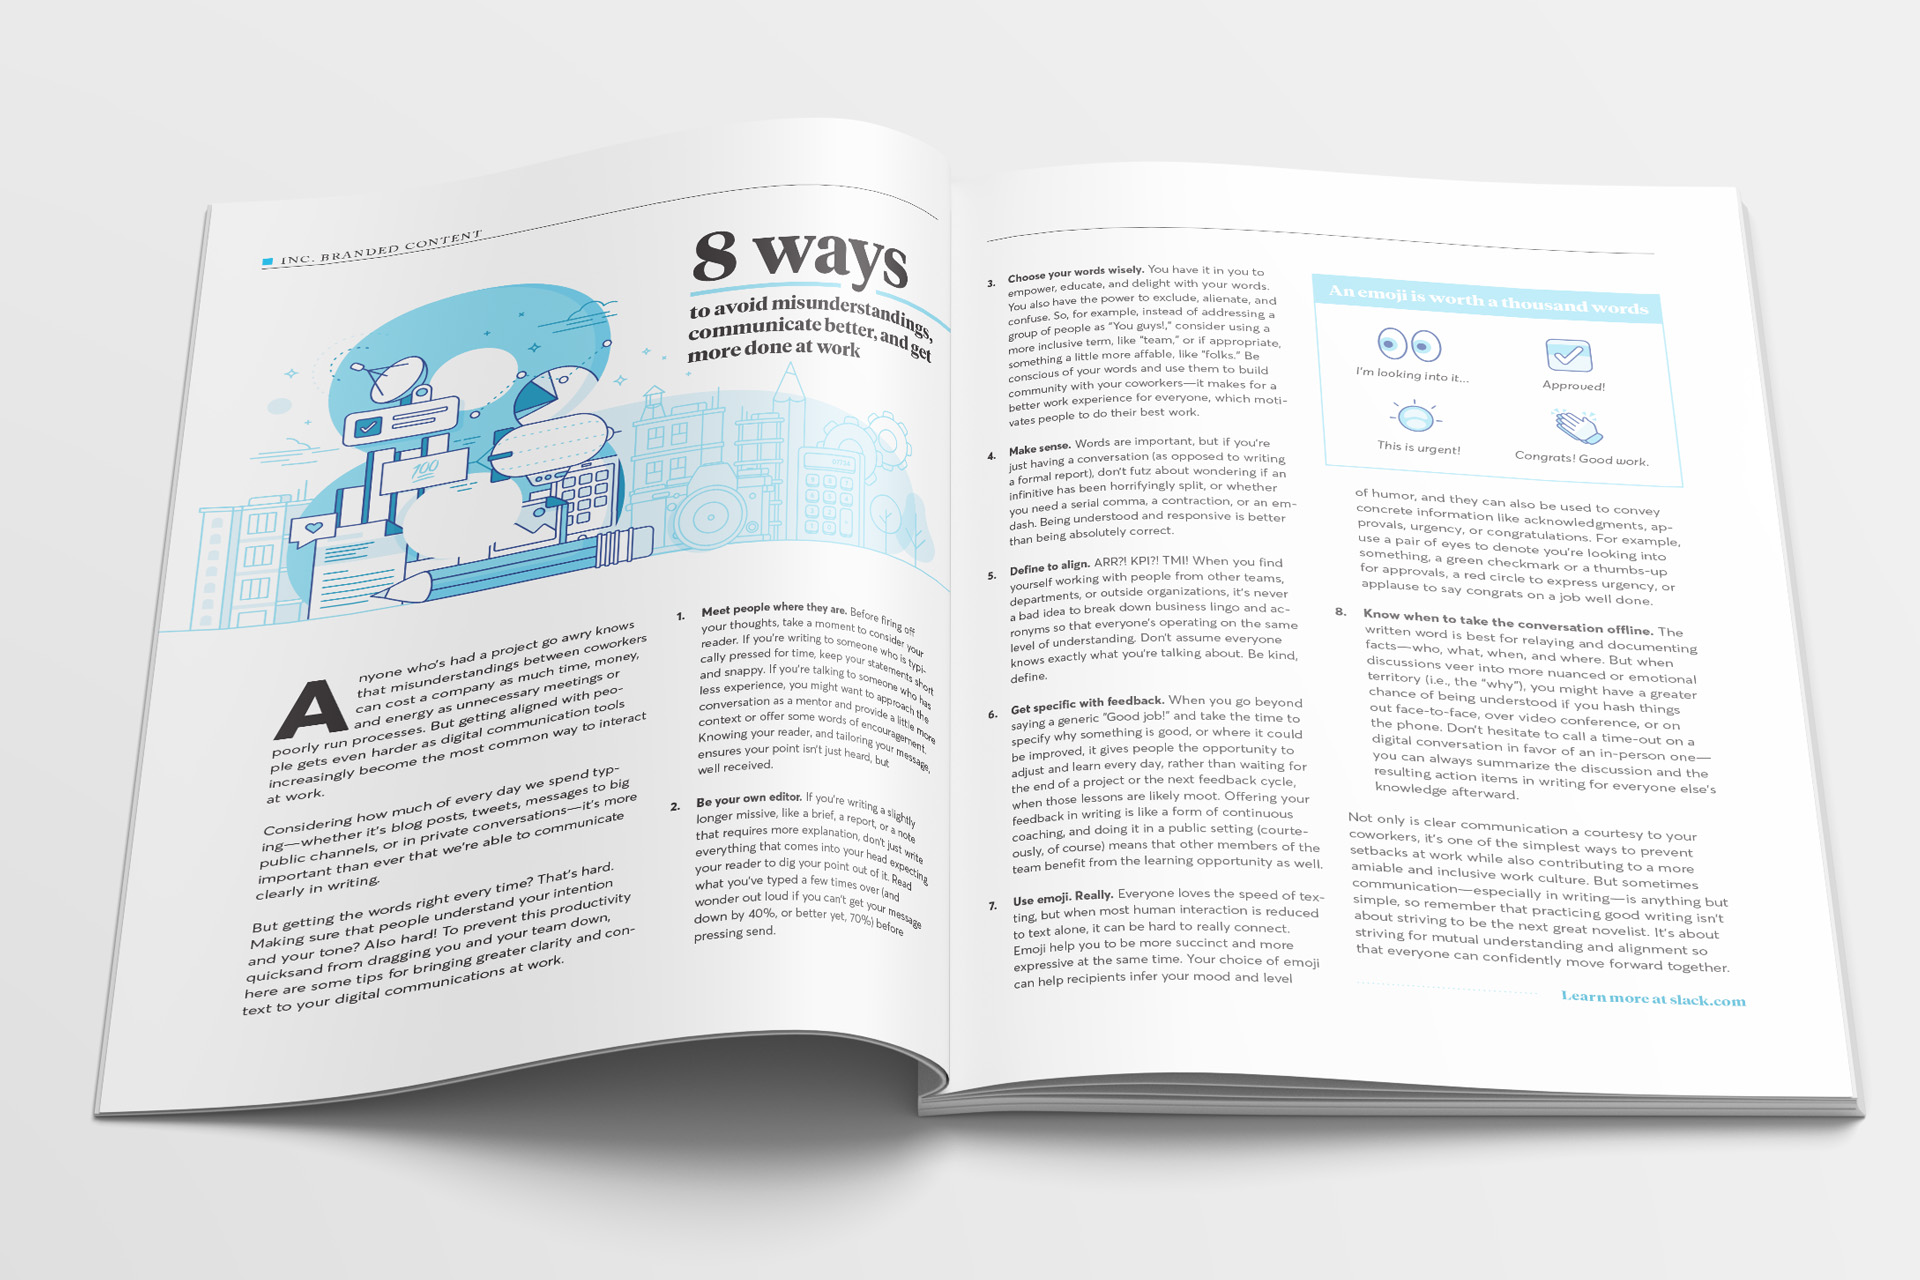 INC Magazine editorial illustration and layout design of 8 ways to avoid misunderstandings, communcate better, and get more done at work as an advertorial for slack in the magazine.